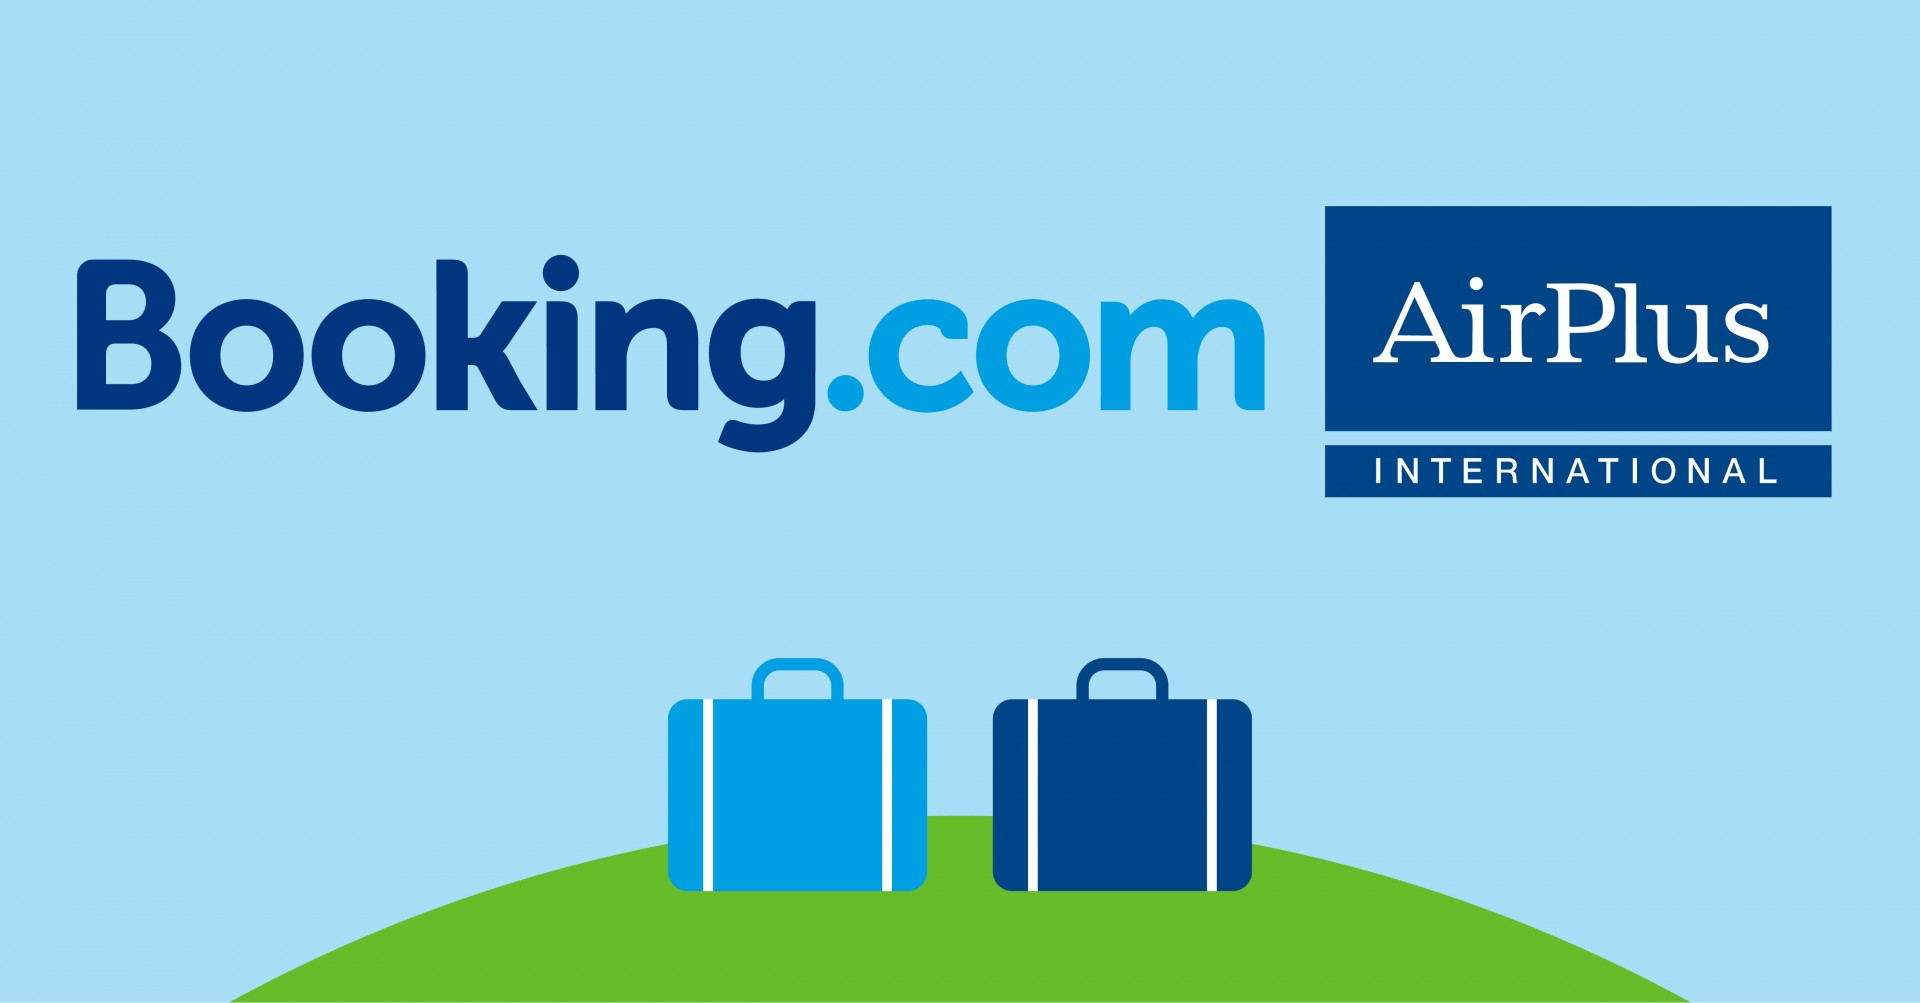 Booking.com and AirPlus